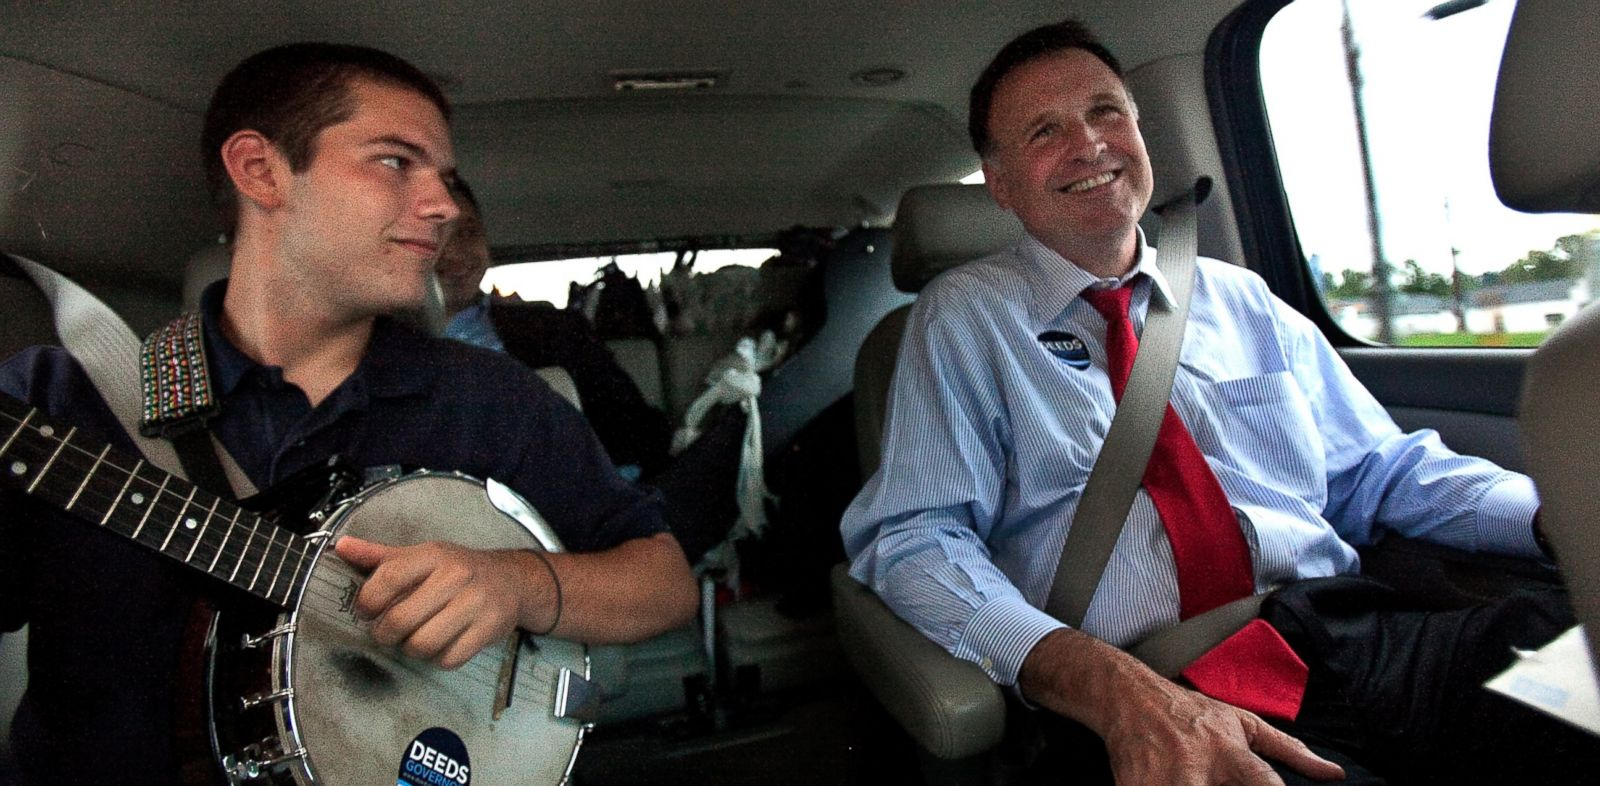 PHOTO: Democratic gubernatorial candidate Creigh Deeds spends time with his son Gus, left, on the road to Halifax, Va., between campaign events, Sept. 25, 2009.